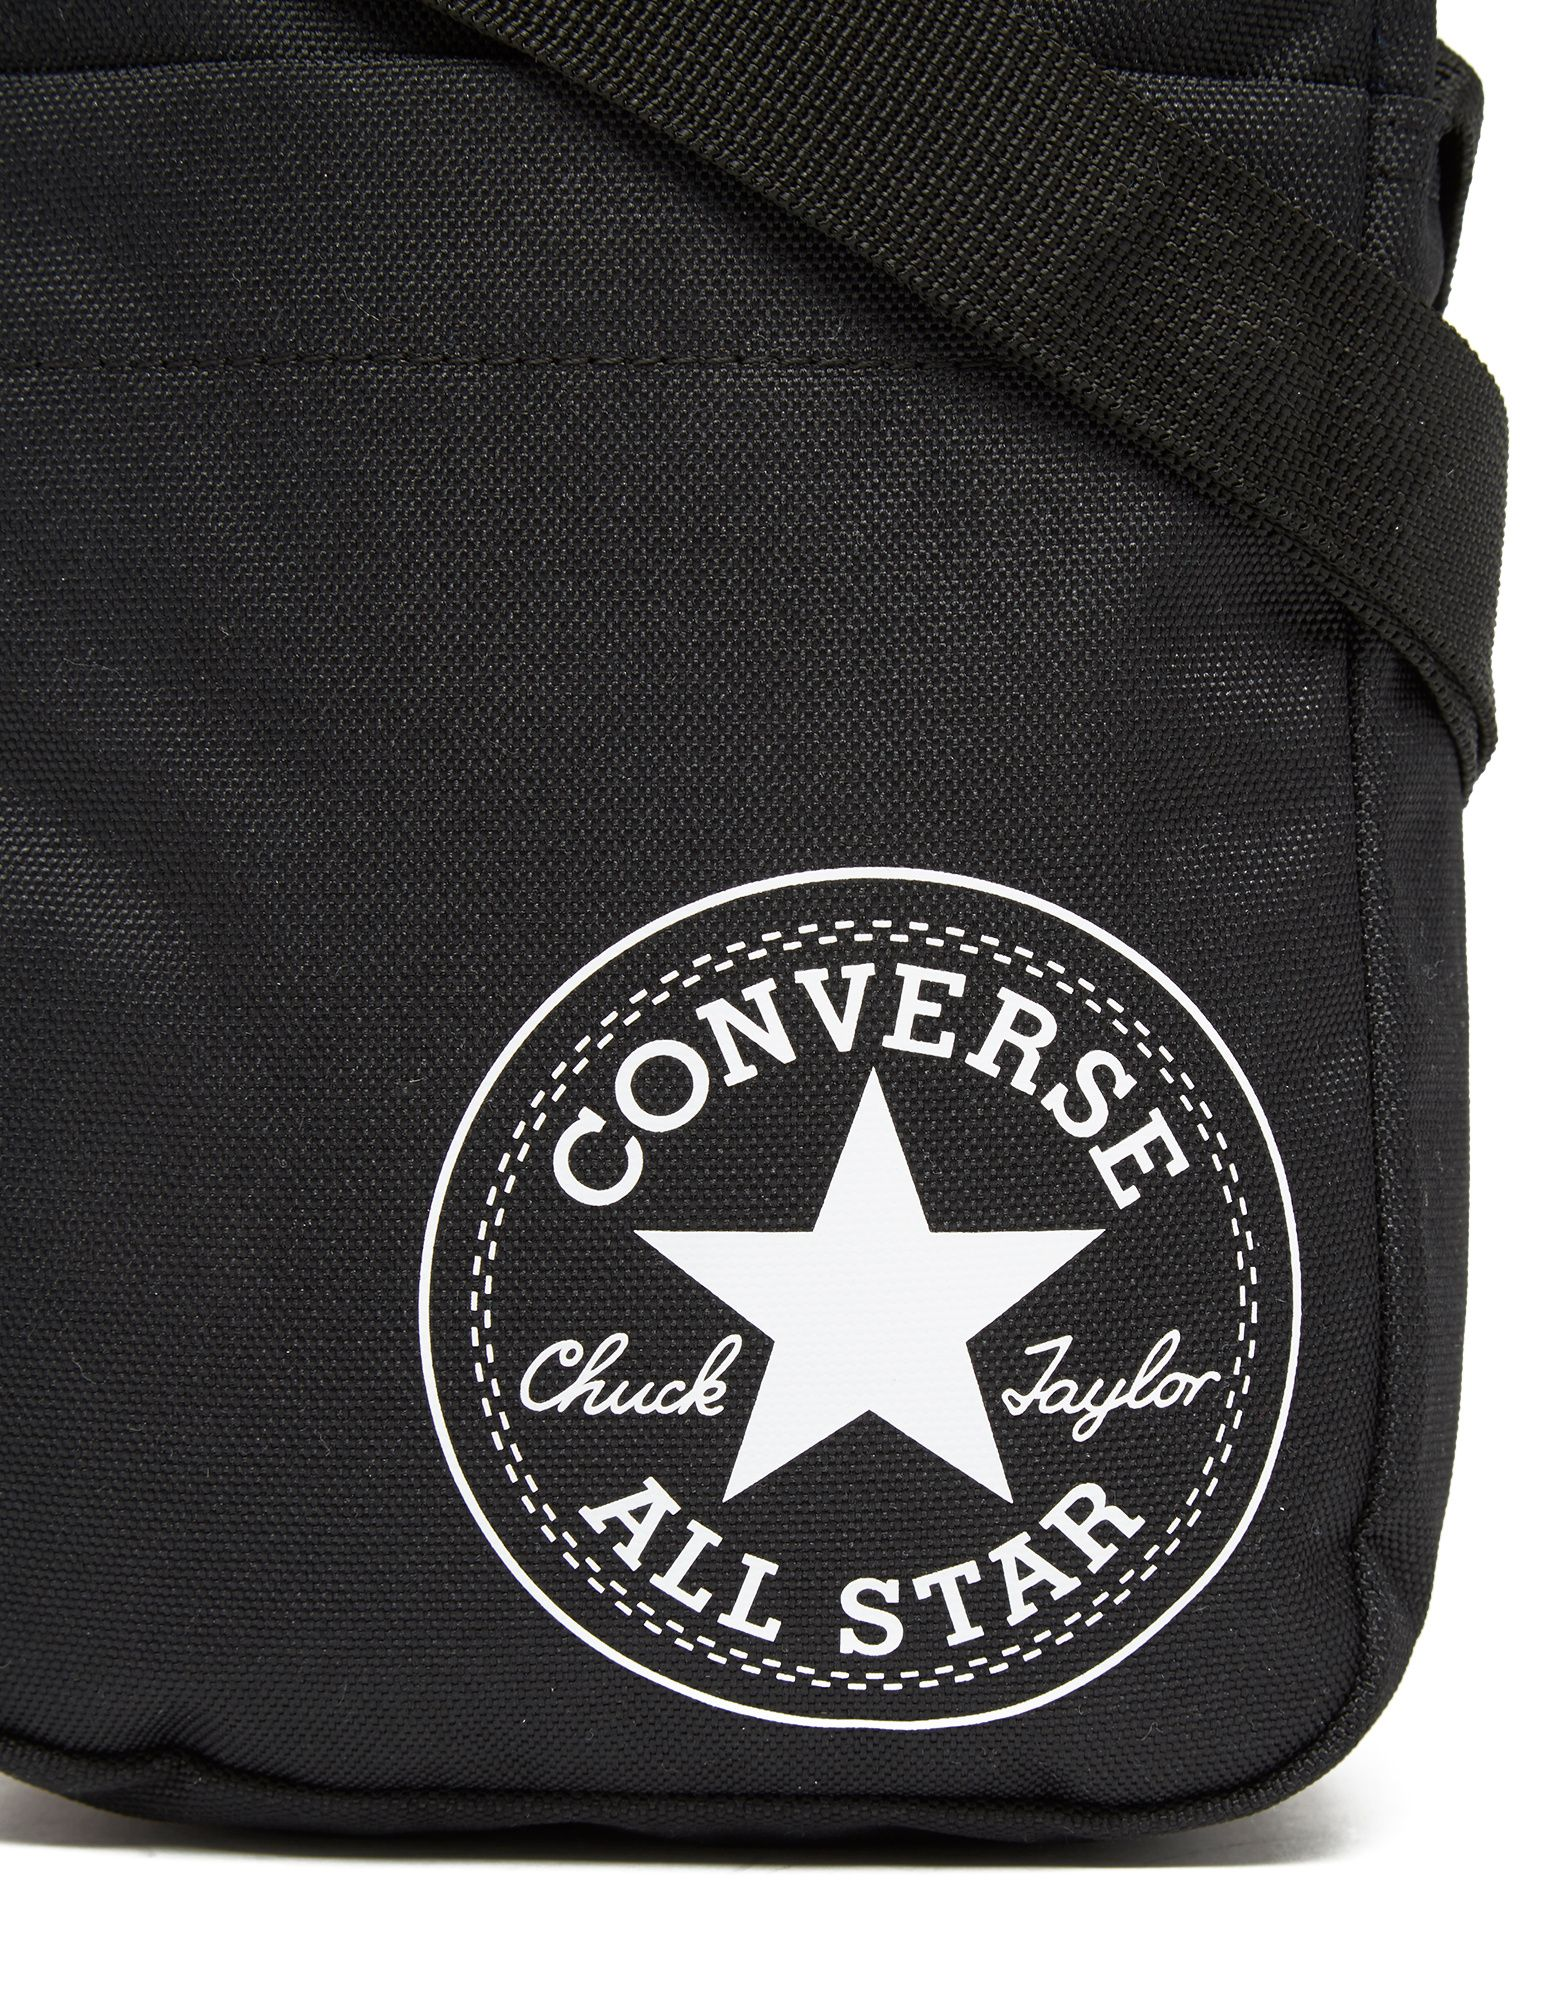 Converse City Small Items Bag